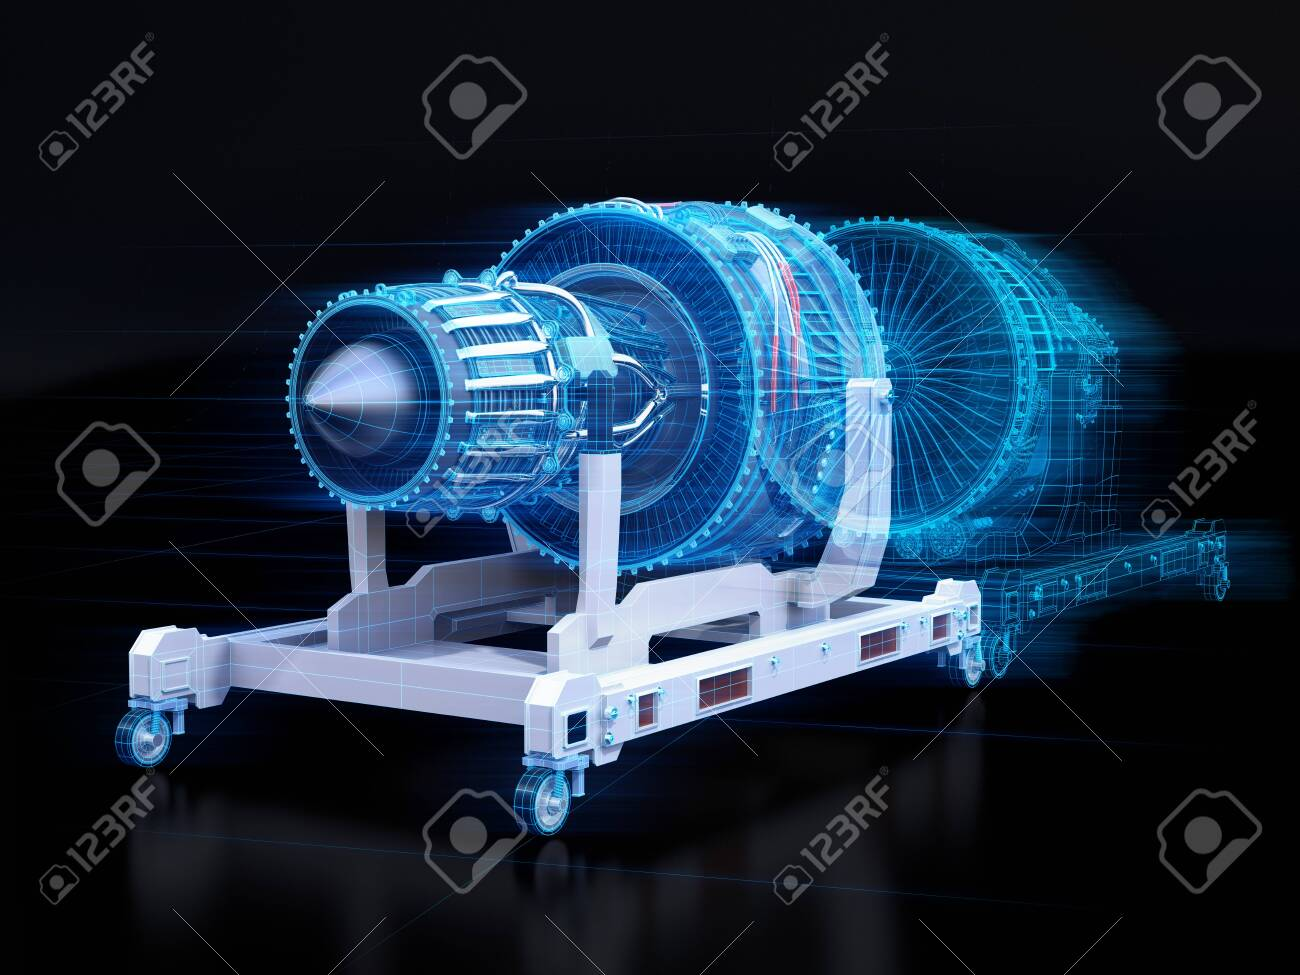 Wireframe rendering of turbojet engine and mirrored physical body on black background. Digital twin concept. 3D rendering image. - 128555186